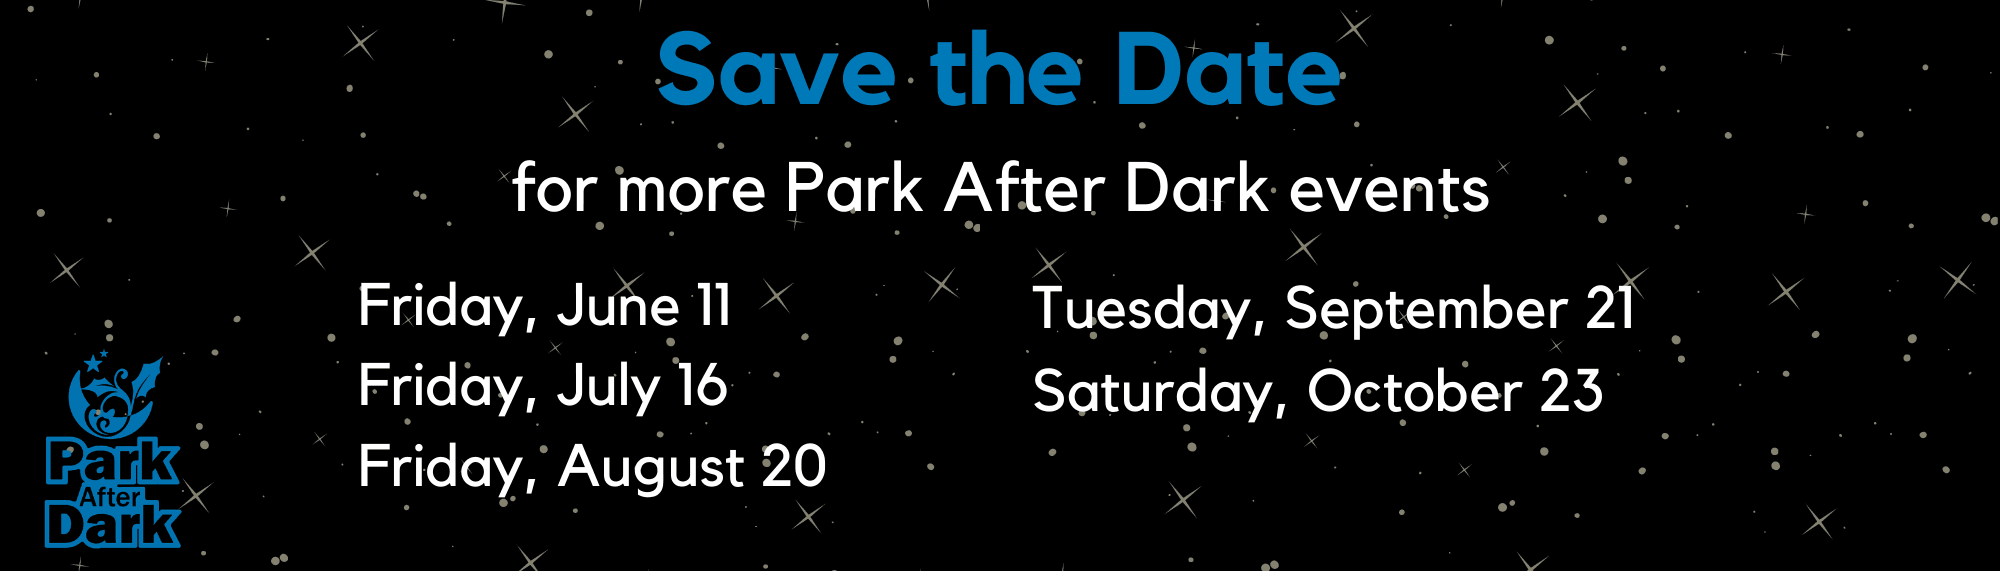 Park After Dark Website Calendar